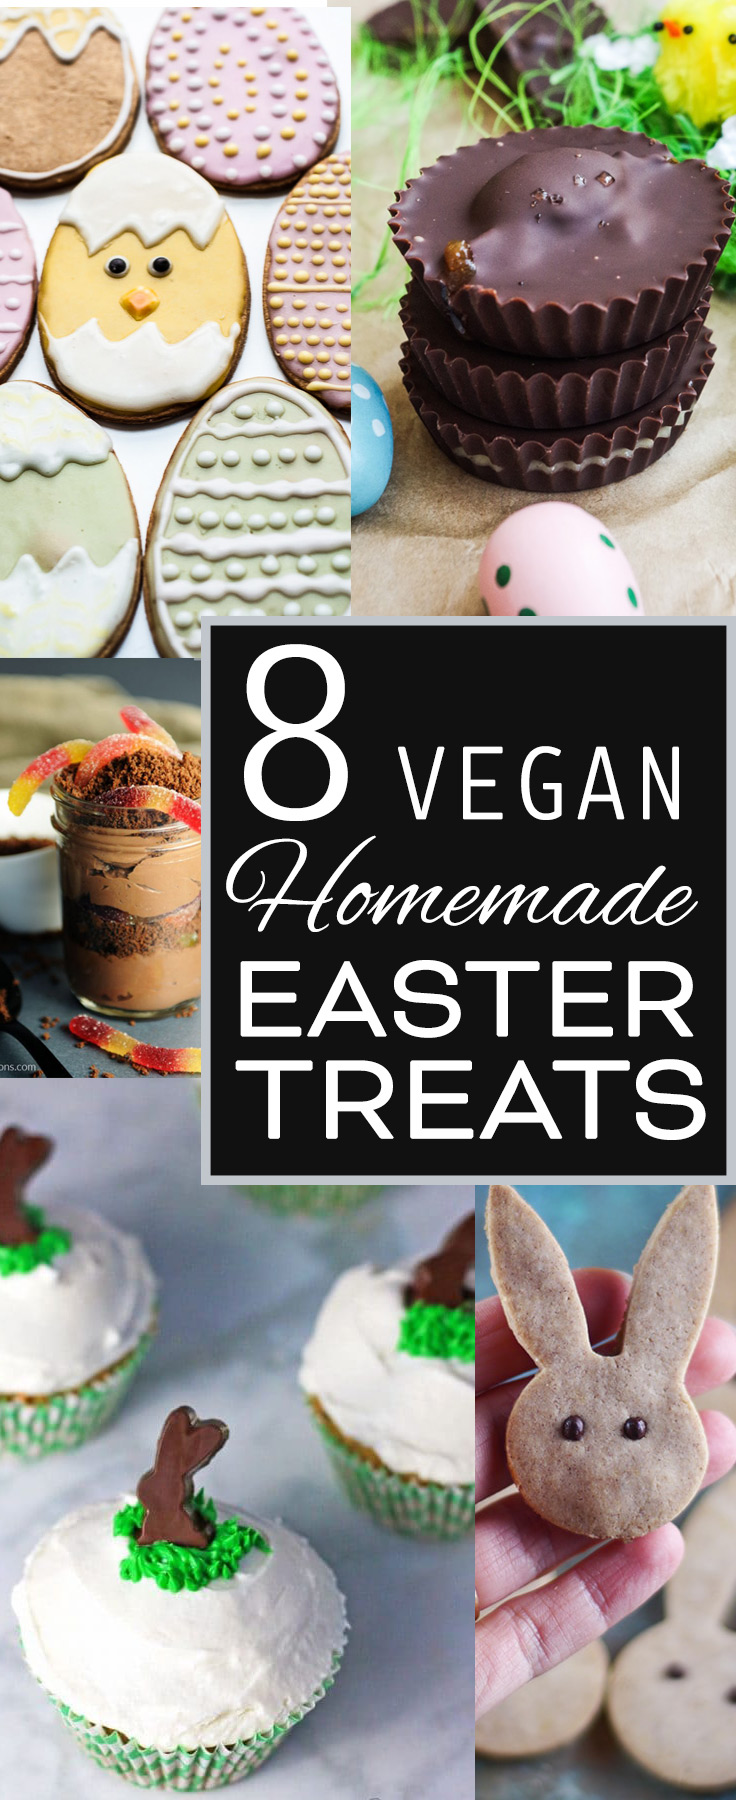 8 Vegan Treat Gifts for Easter & Other Spring Celebrations, Collected by Beautiful Ingredient